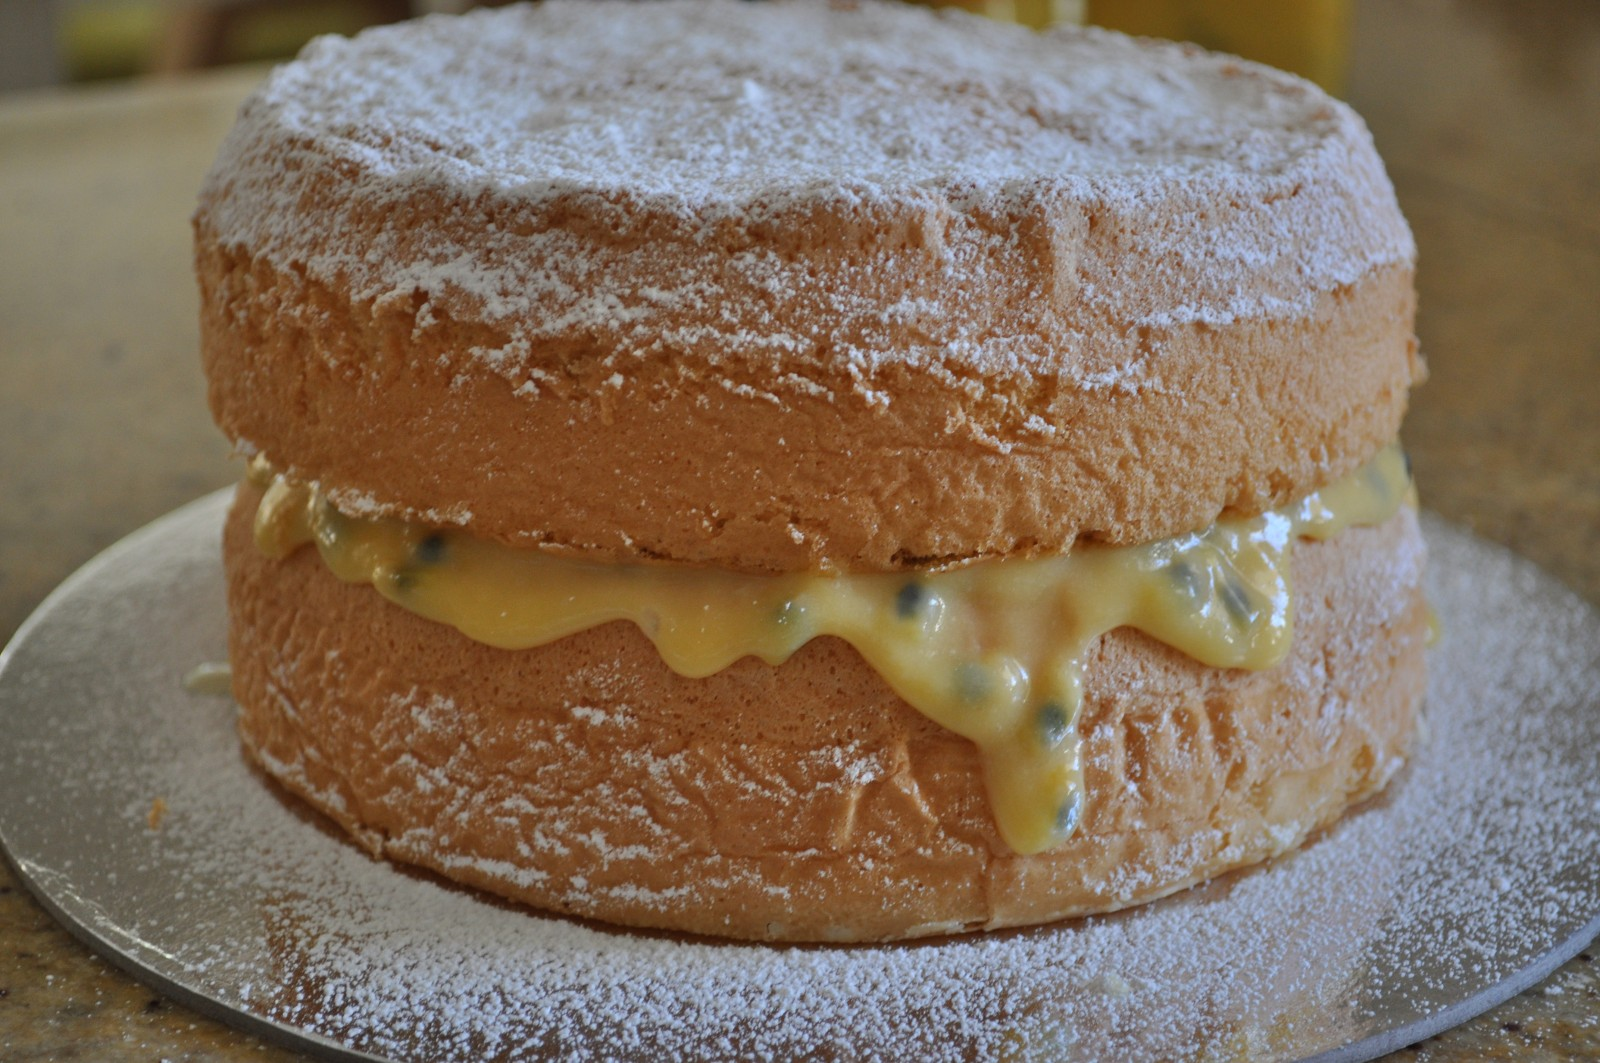 Passionfruit sponge cake